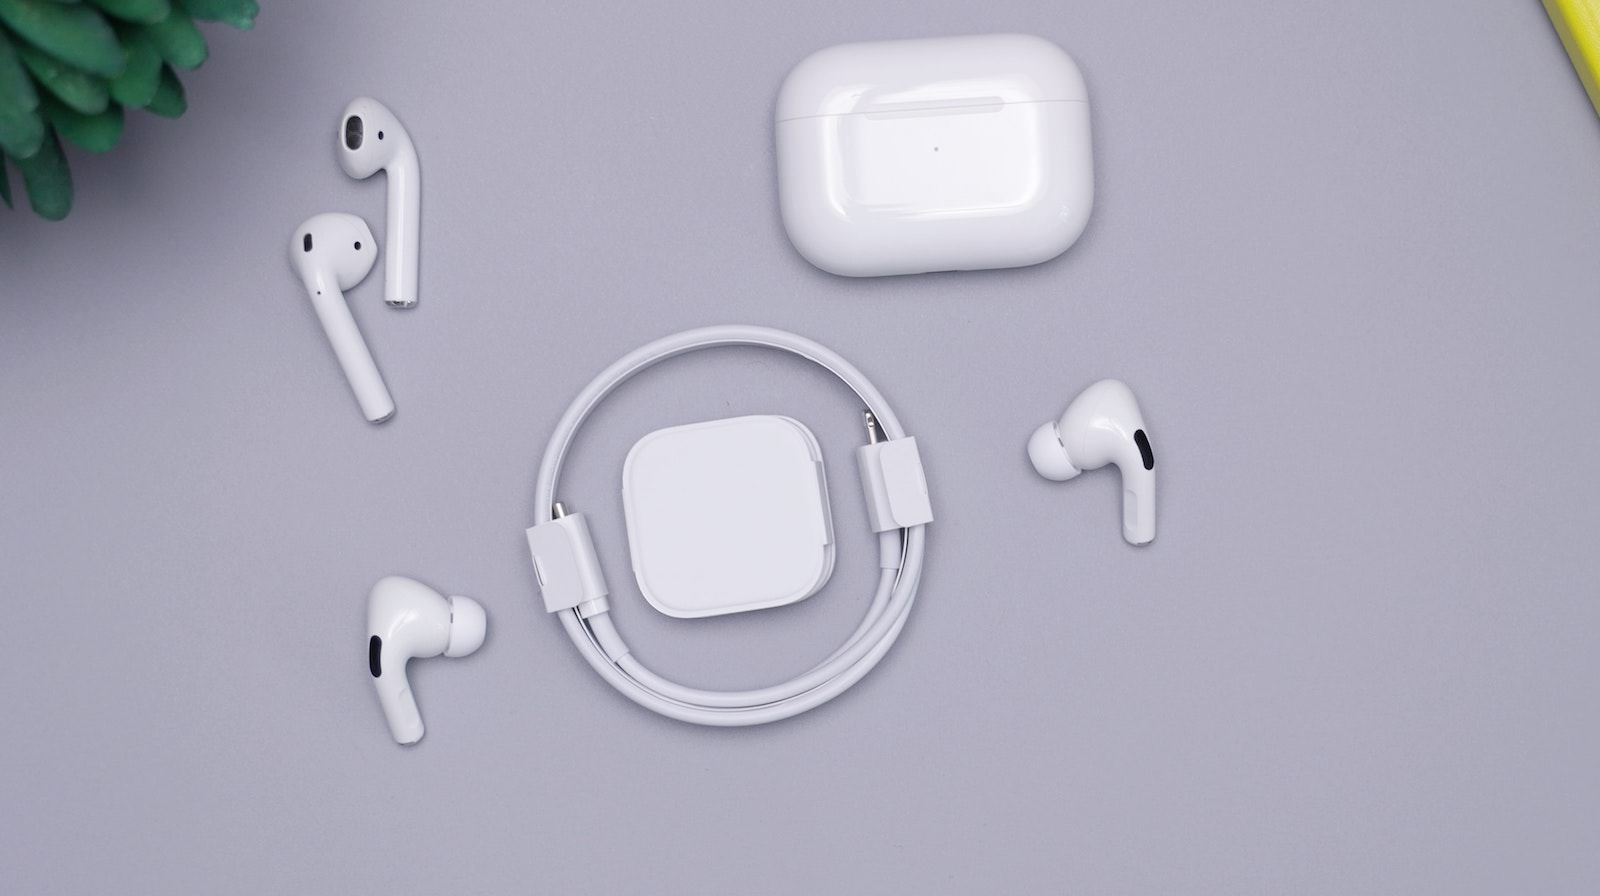 Daniel romero luhAYh8JpDc unsplash airpods pro with cable